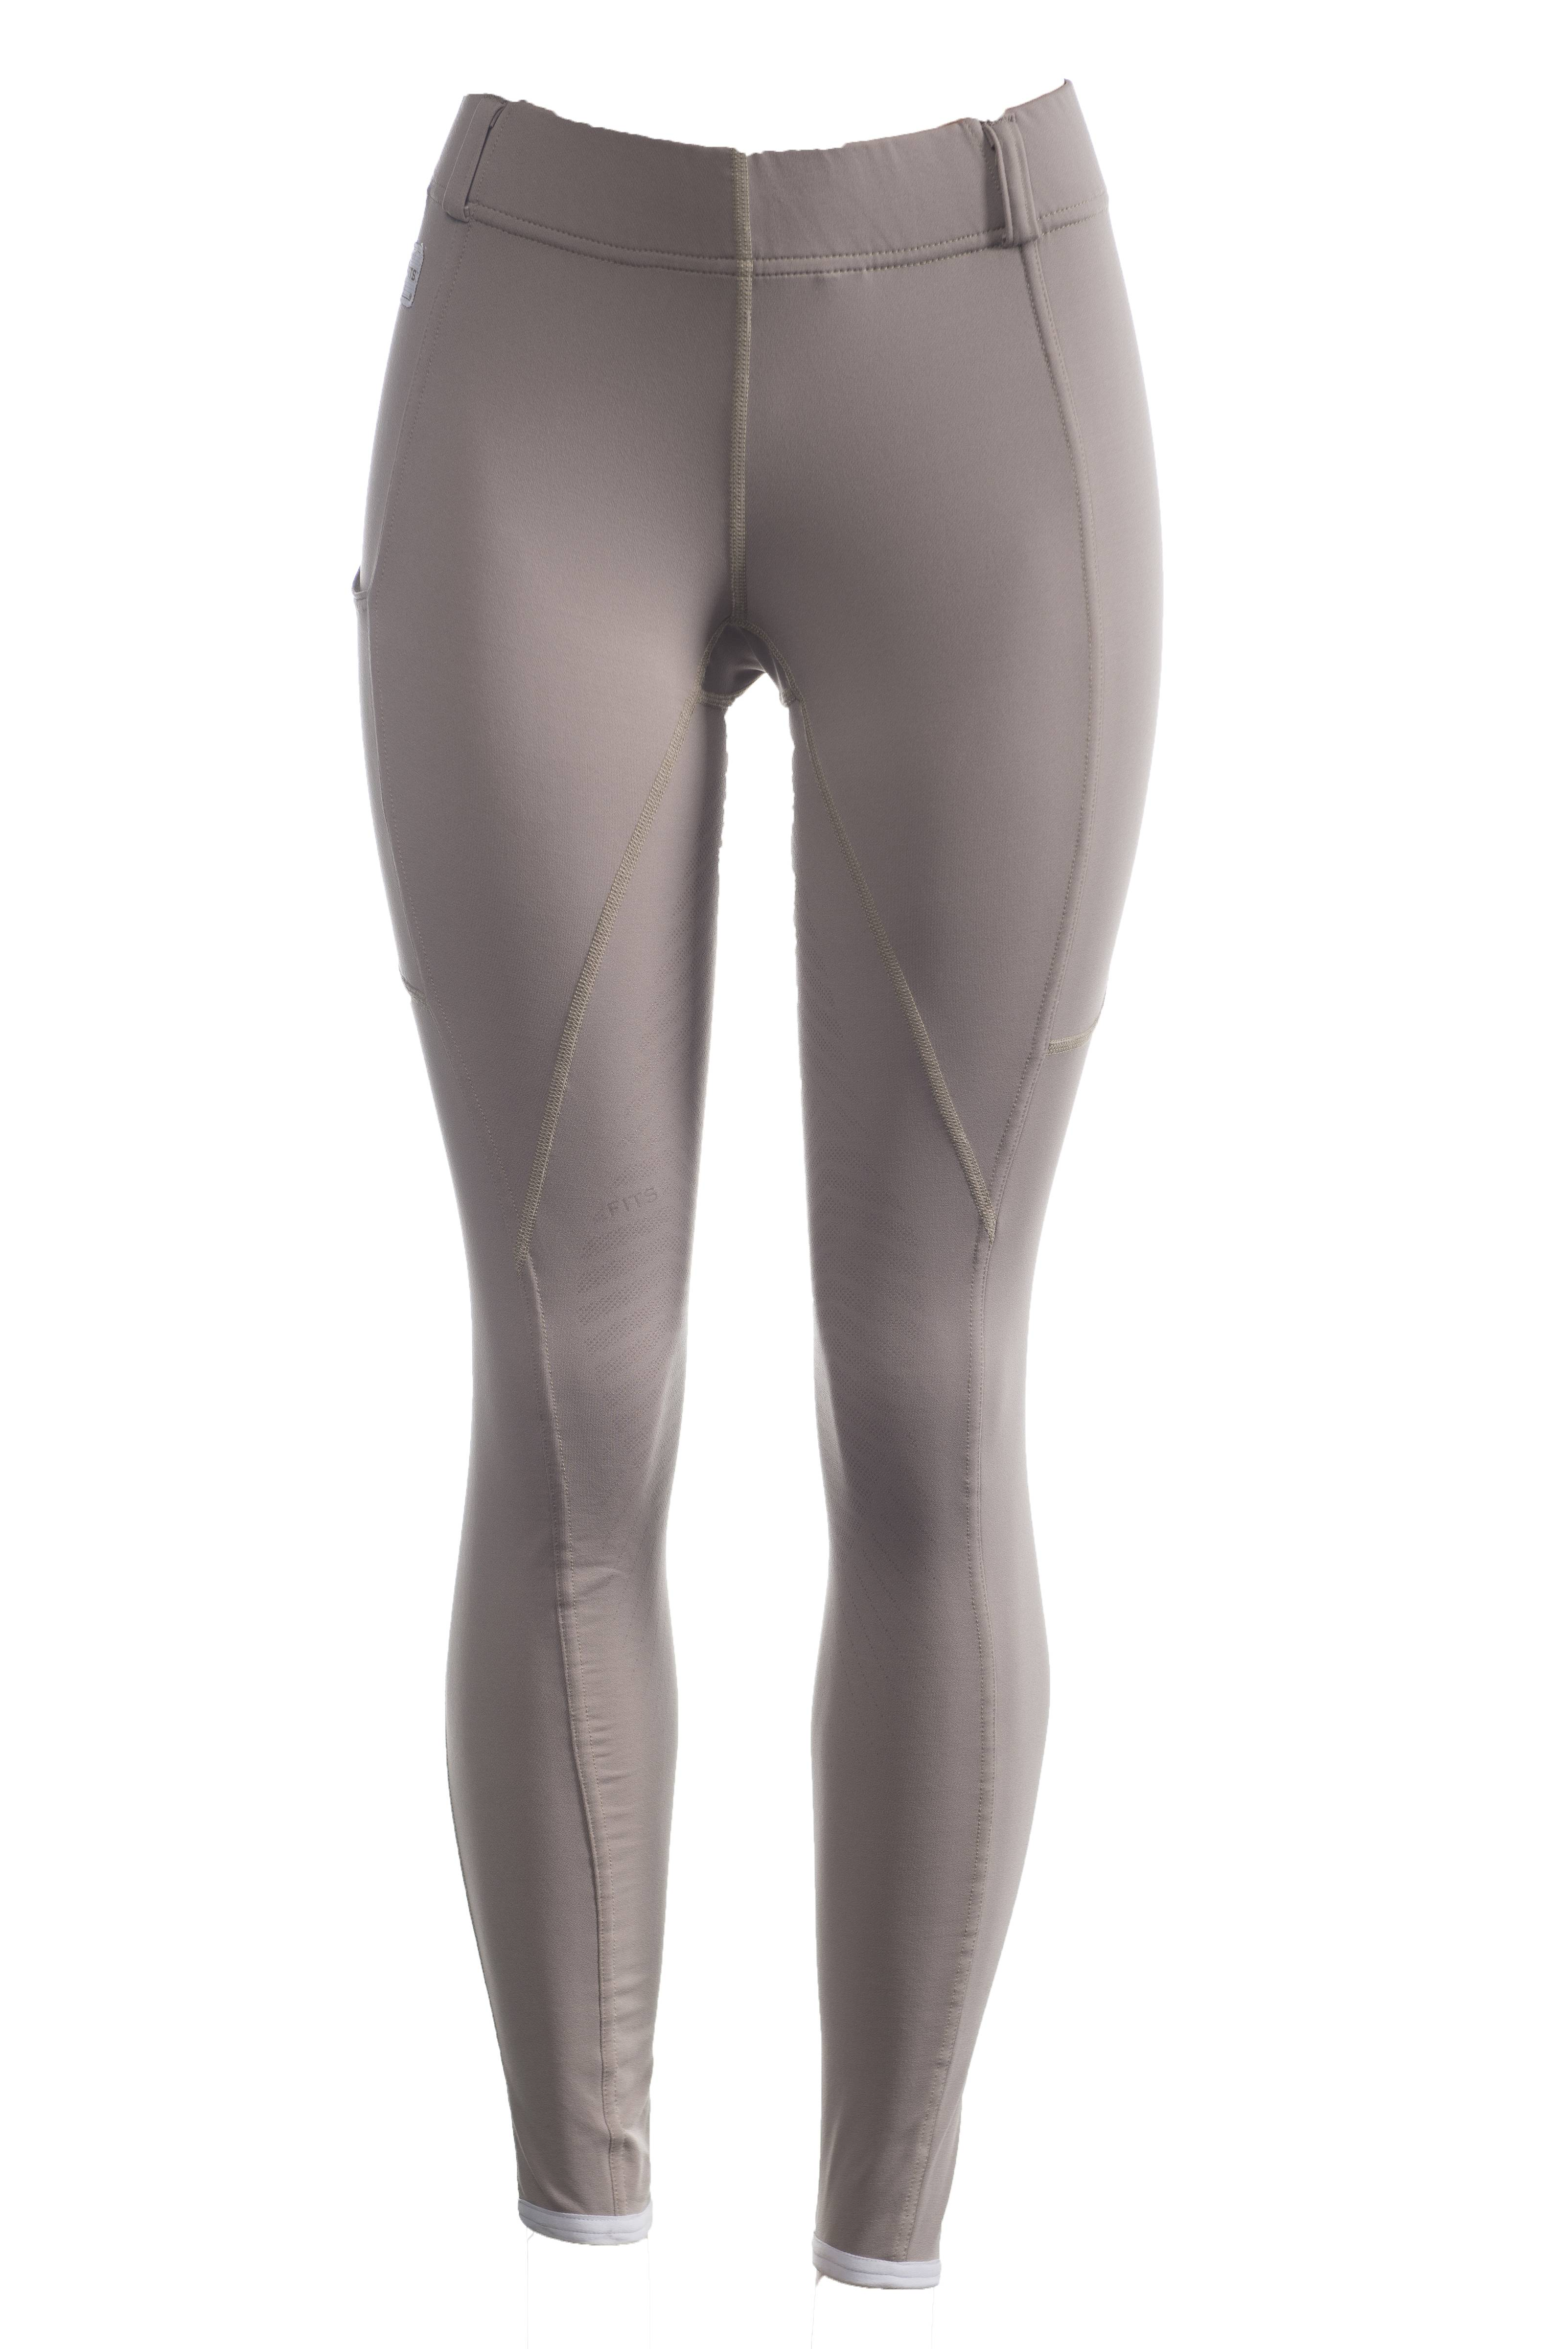 FITS Techtread Full Seat Pull On Truffle Breech - Ladies